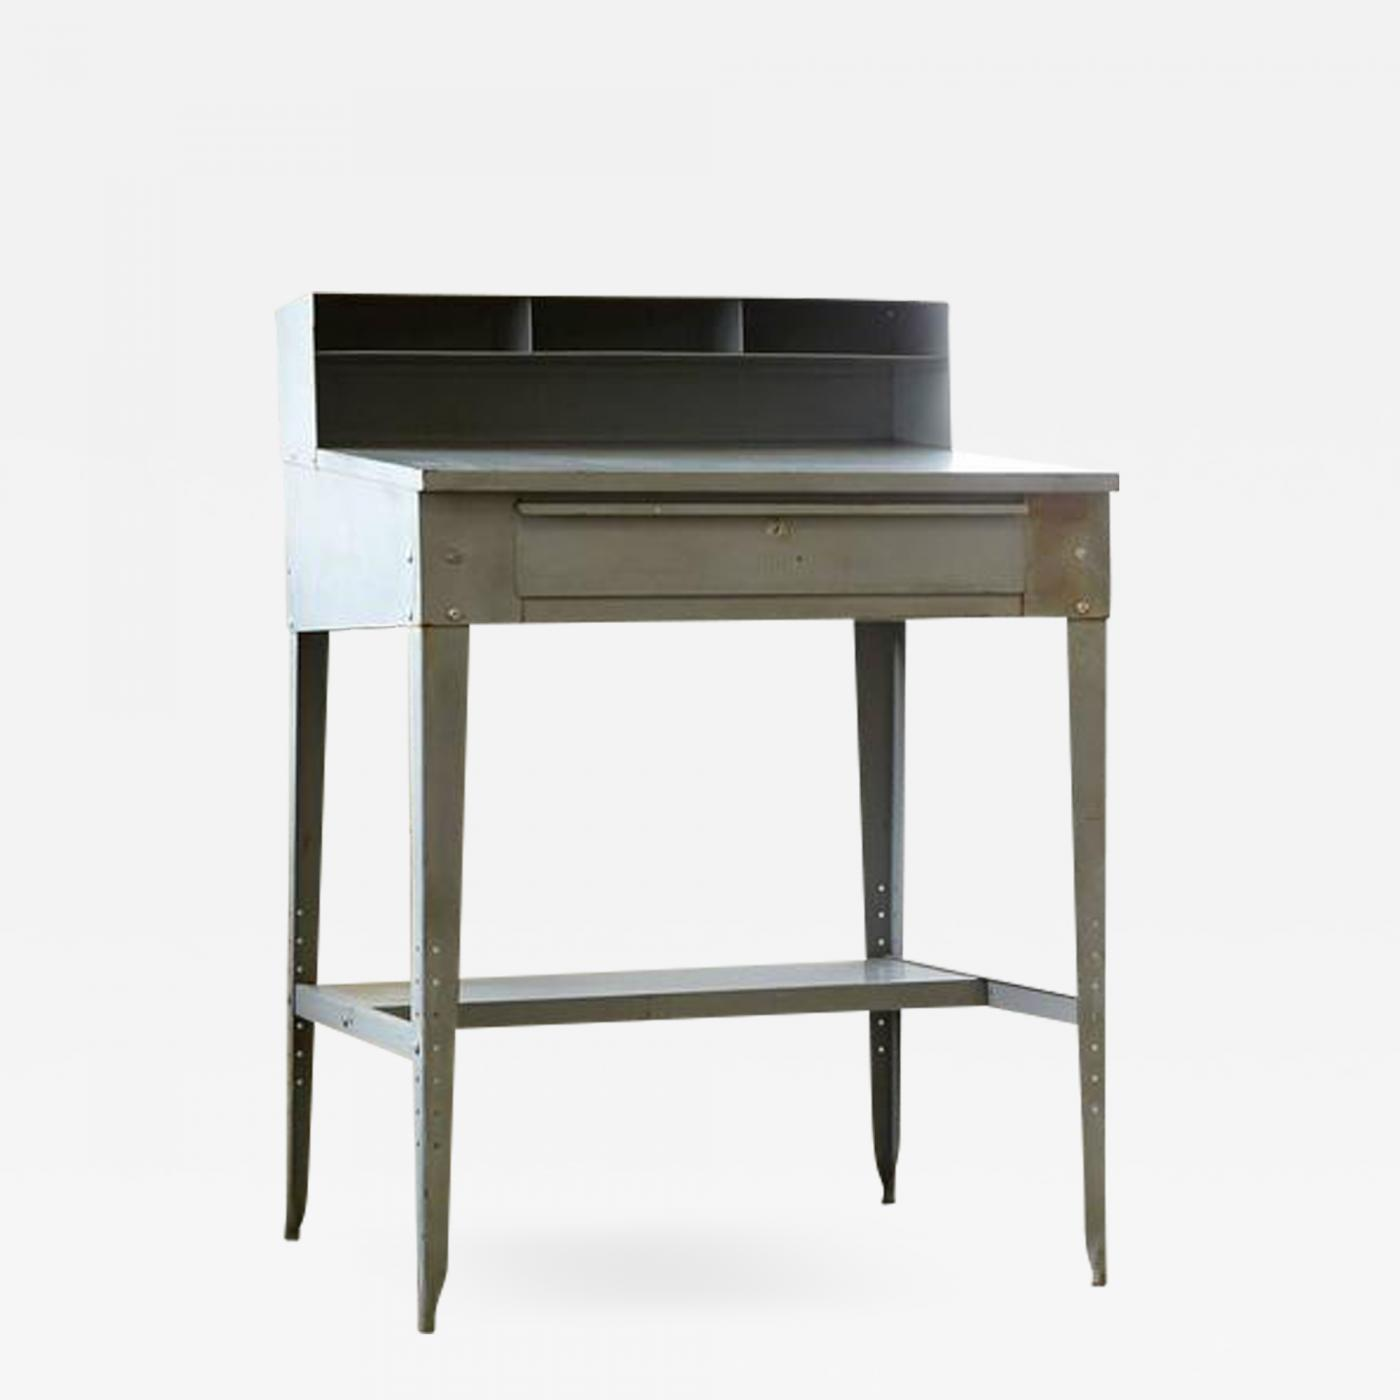 new desks vintage desk pic weeks vamp furniture accents this grey at with